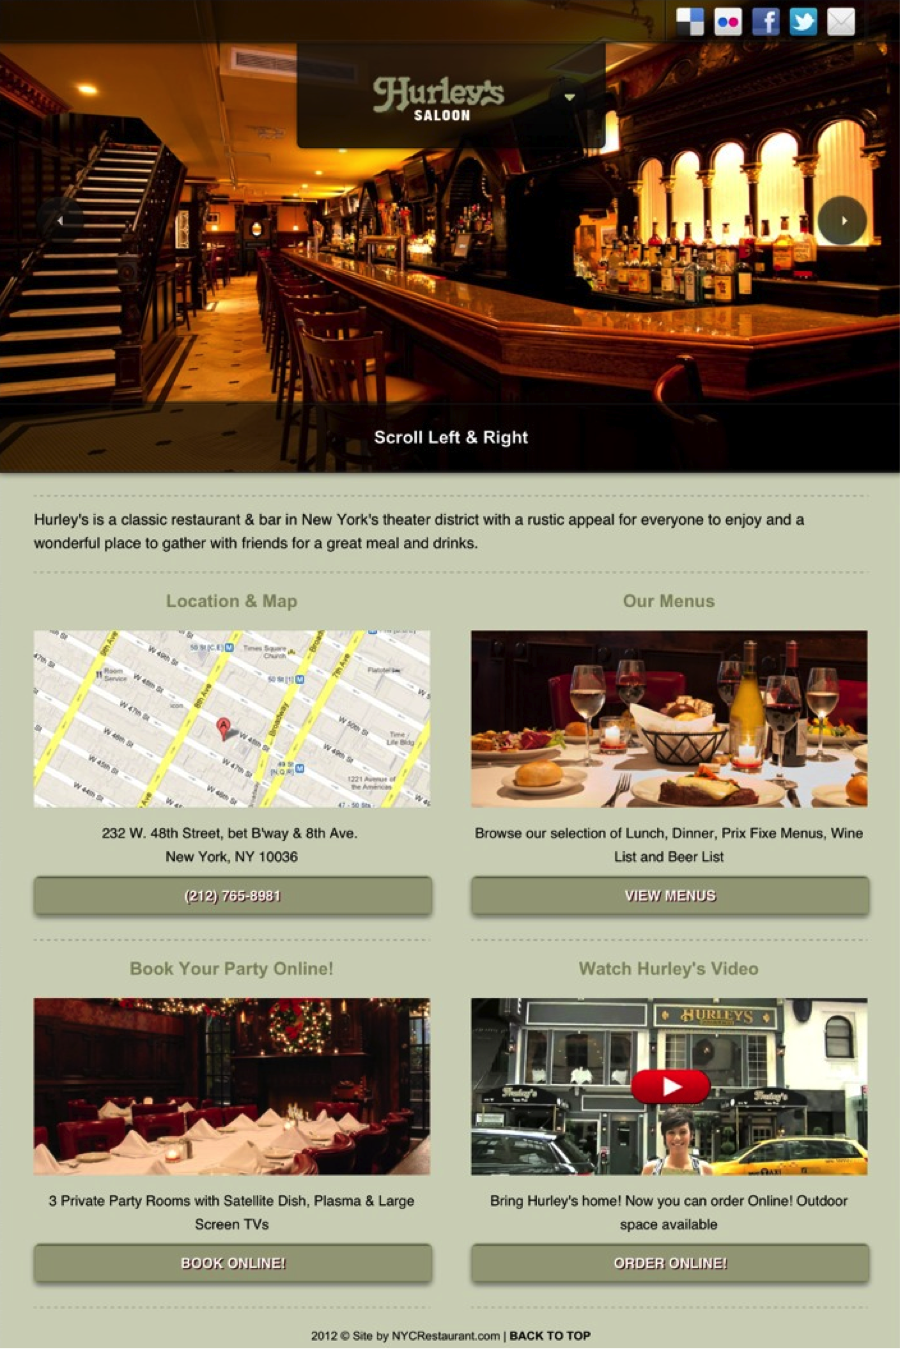 Hurley's mobile web page #mobile #web #design #homepage #content #iphone #ipad  #photography #graphics #content #nycrestaurants #hurleys #bar #eat #drink #NYC Visit our website on your mobile device! www.hurleysnyc.com